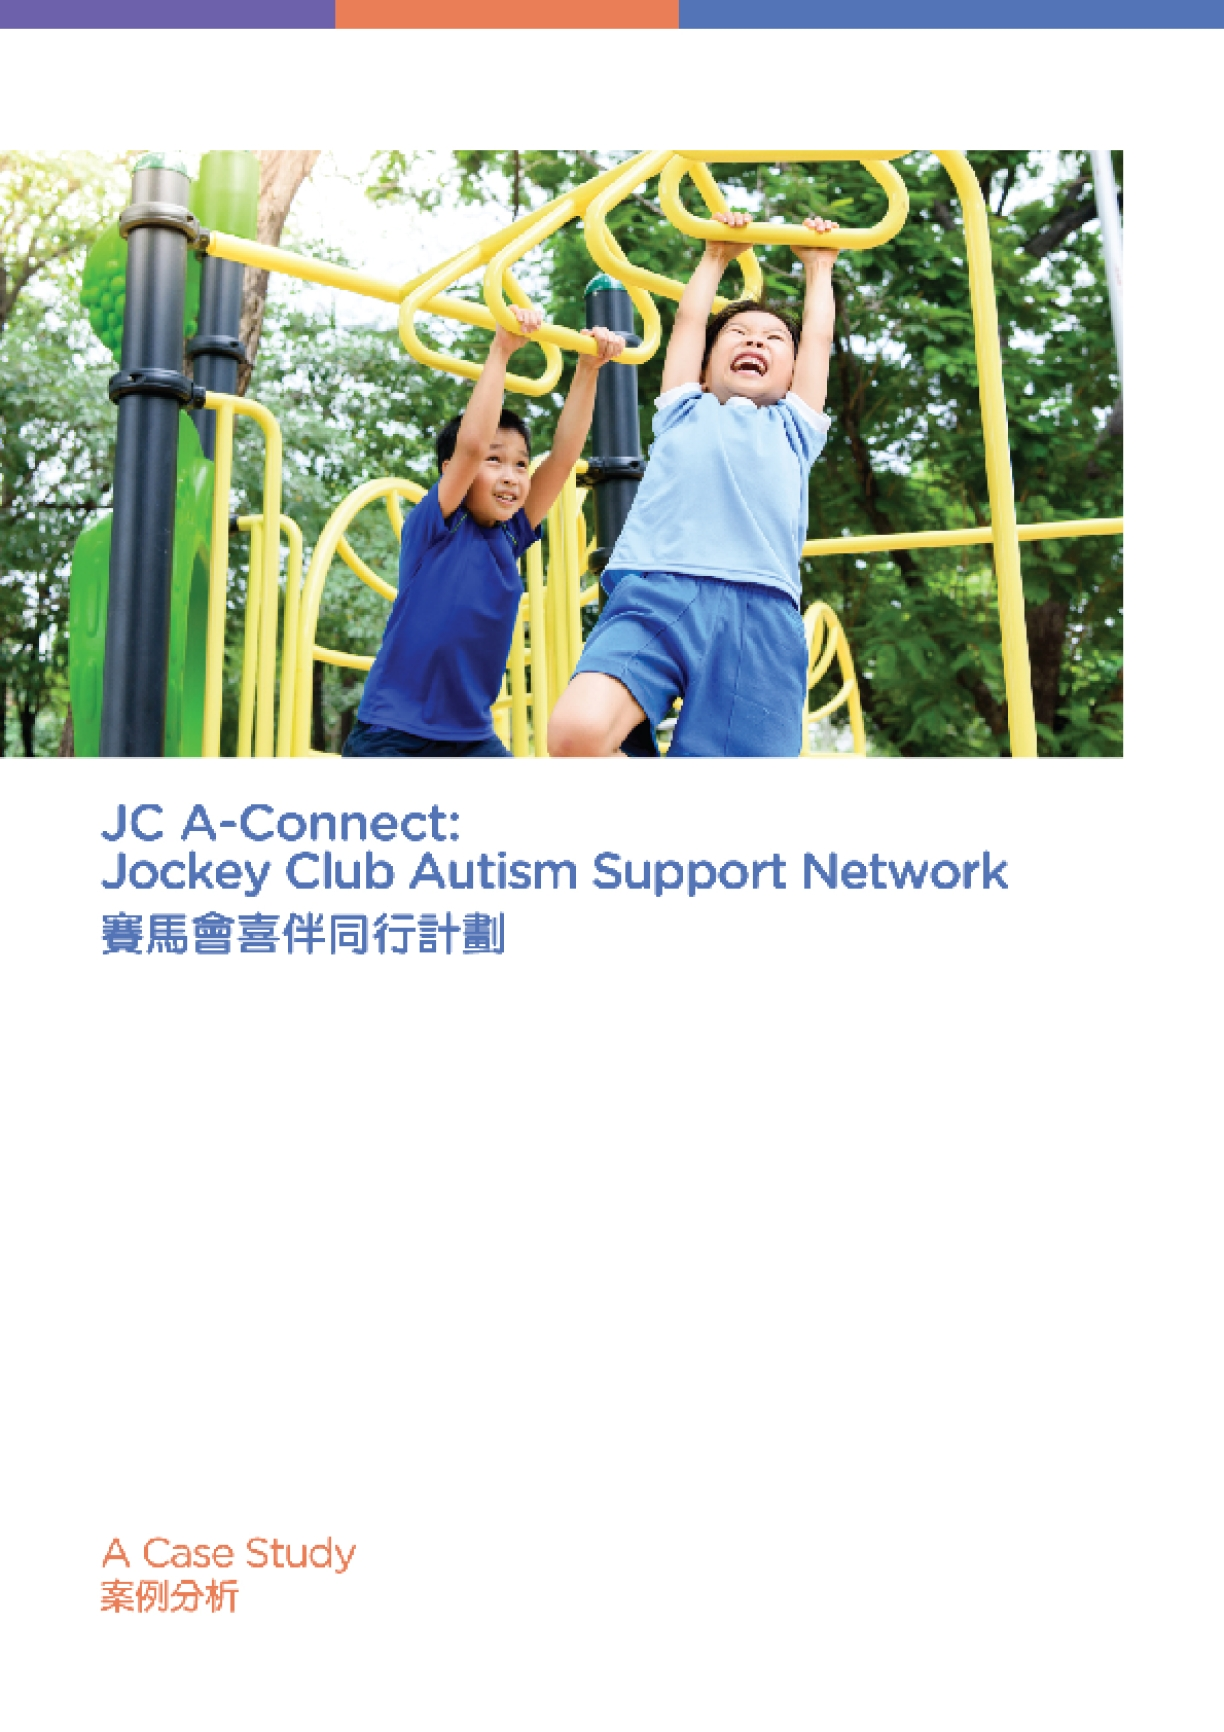 JC A-Connect: Jockey Club Autism Support Network